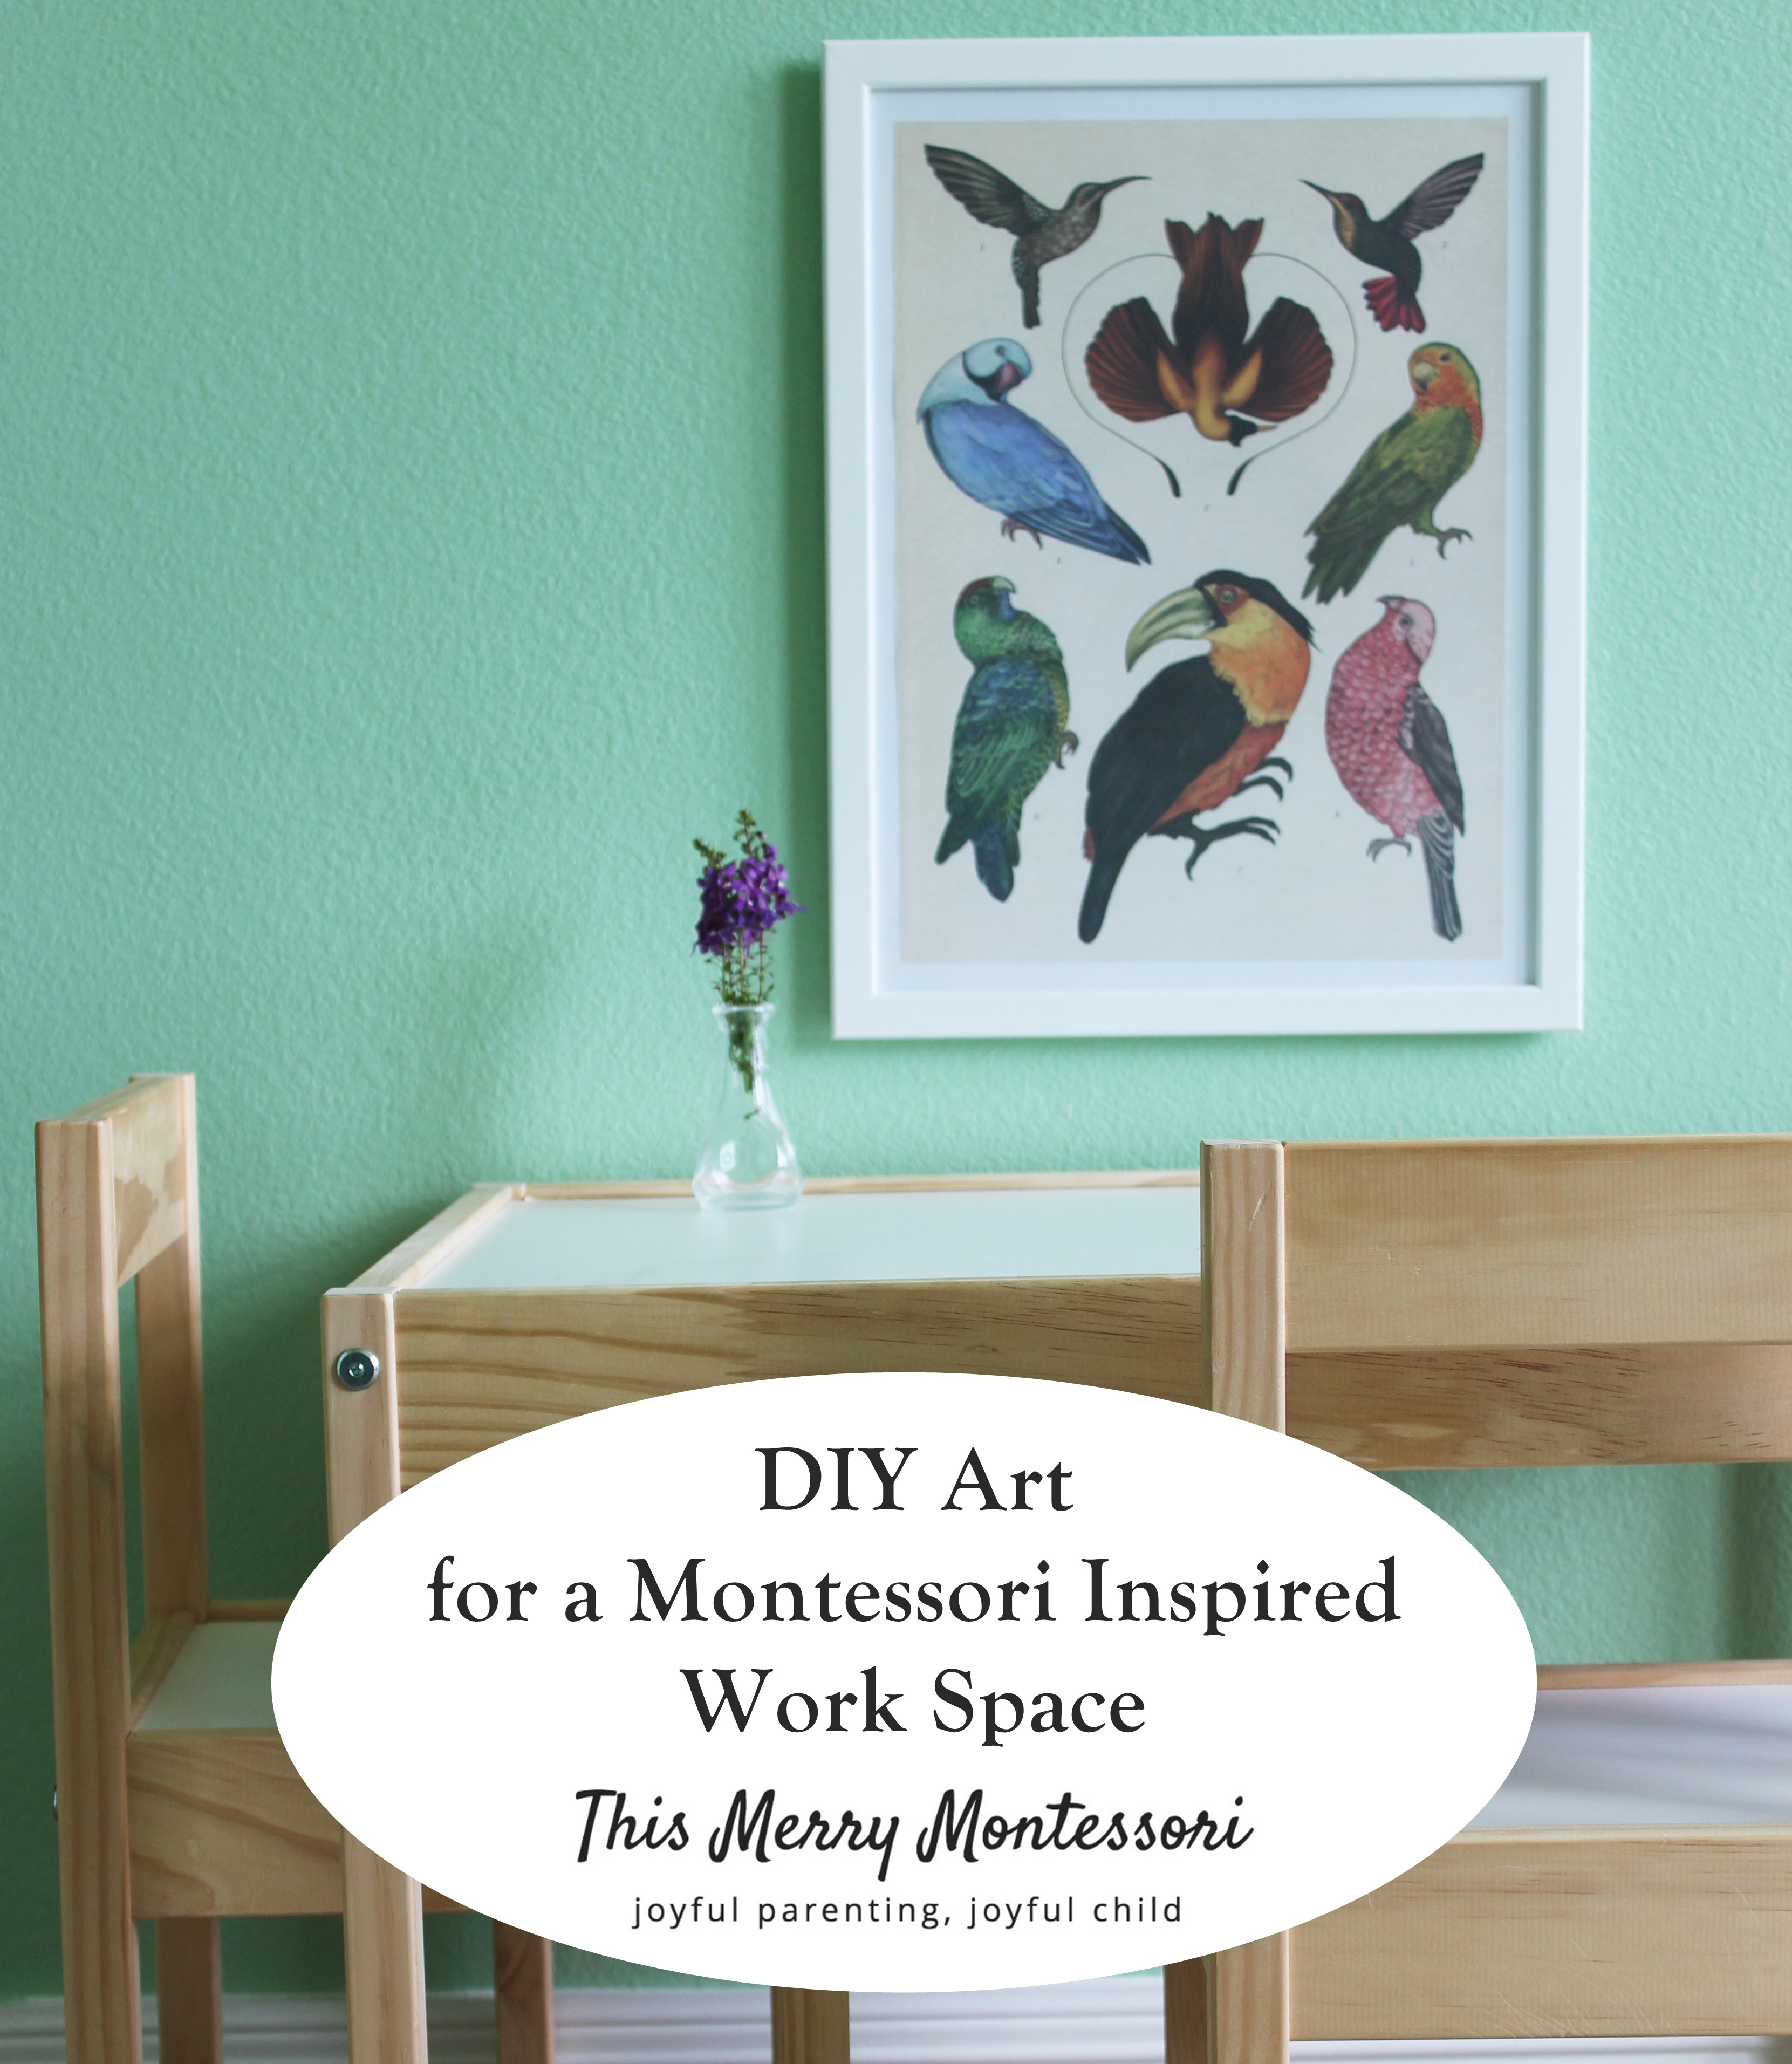 DIY Art for a Montessori Inspired Work Space